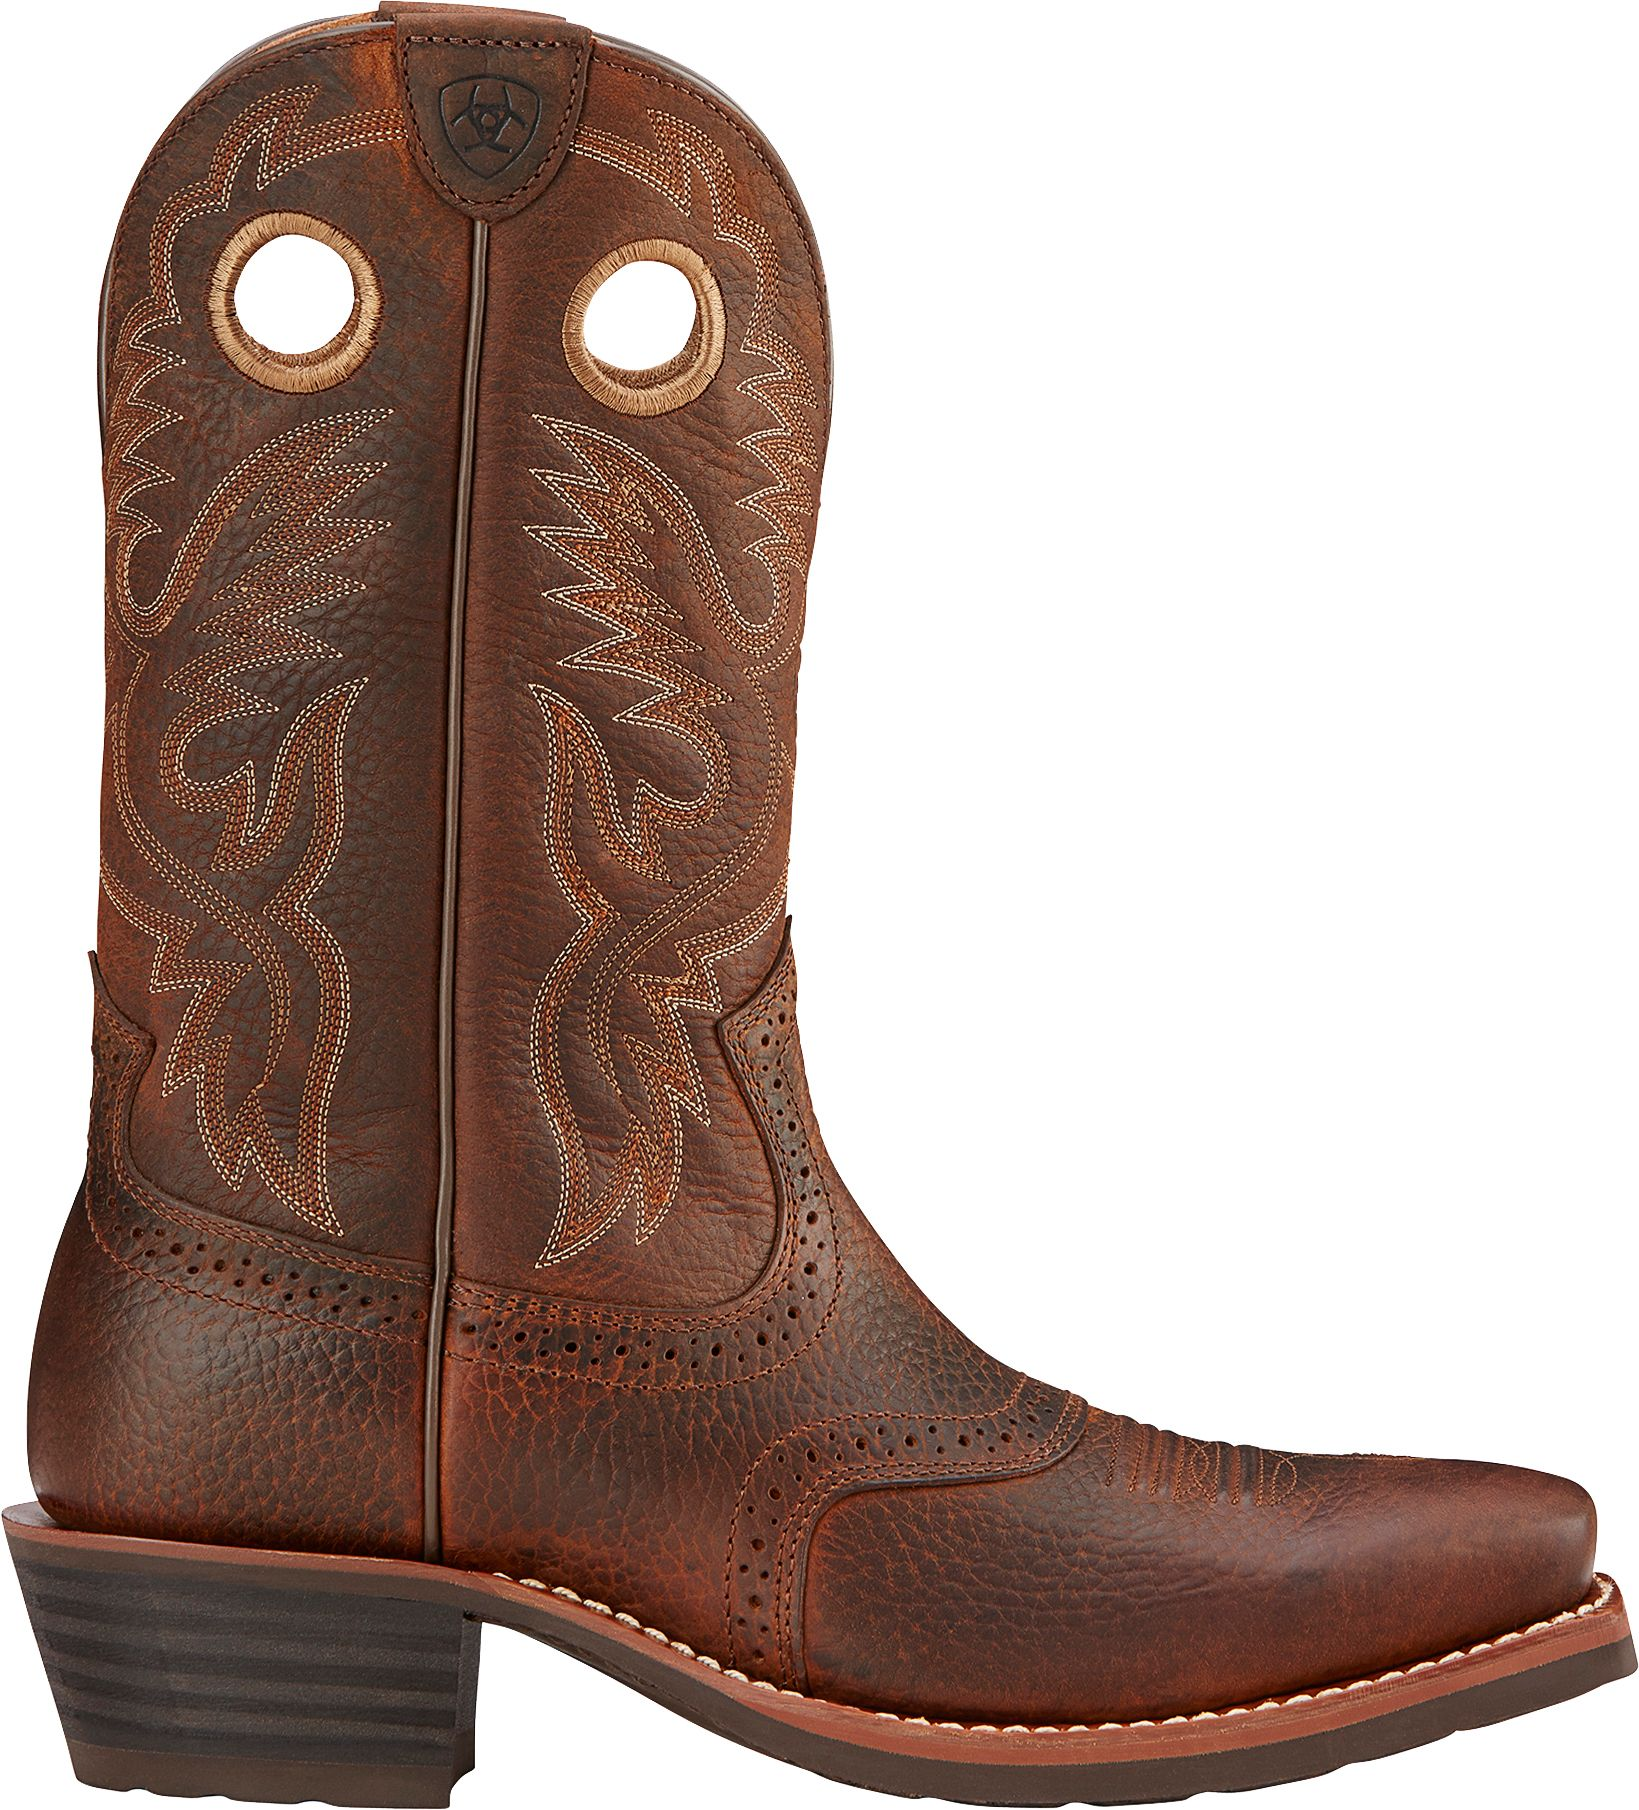 Ariat Shoes  Ariat Roughstock Mens Boots Brown